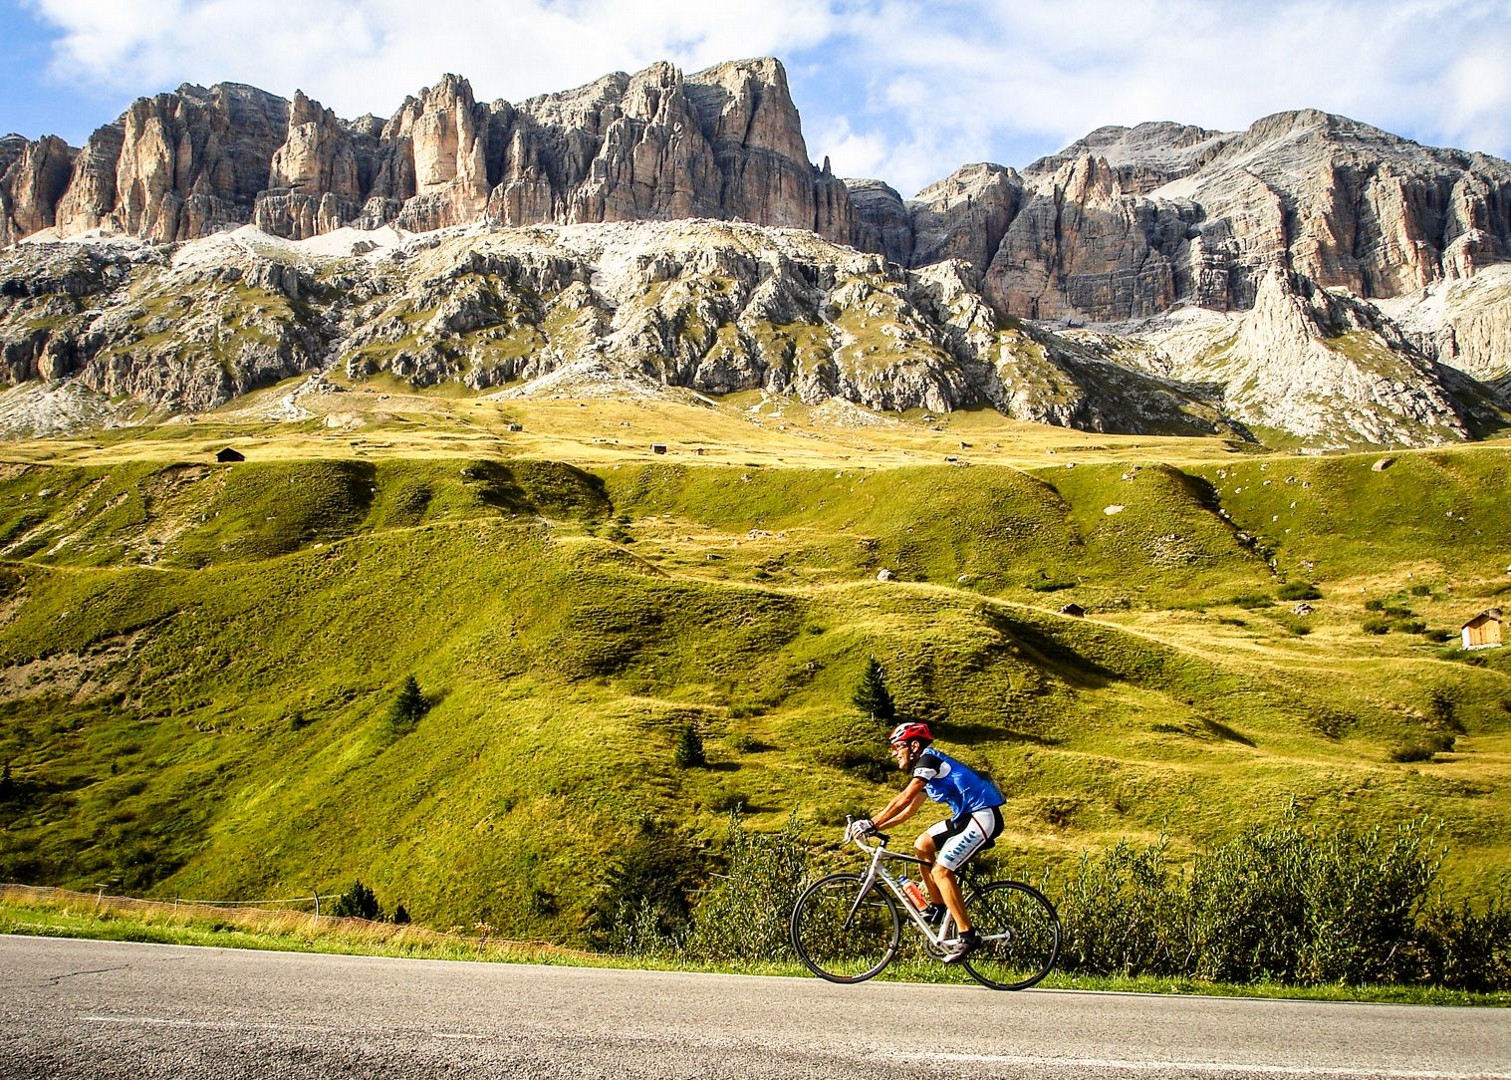 Droad-cycling-cols-of-italy-switzerland-and-france.jpg - Italy - Alps and Dolomites - Giants of the Giro - Guided Road Cycling Holiday - Italia Road Cycling